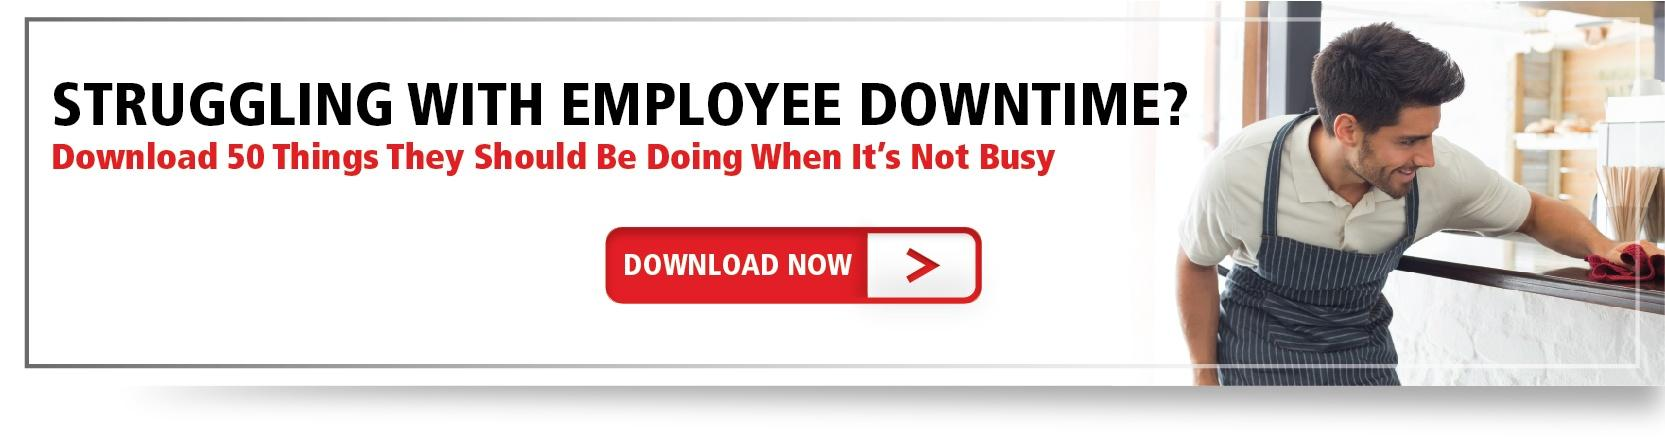 Snag Your Copy Of 50 Things Employees Should Do When It's Not Busy